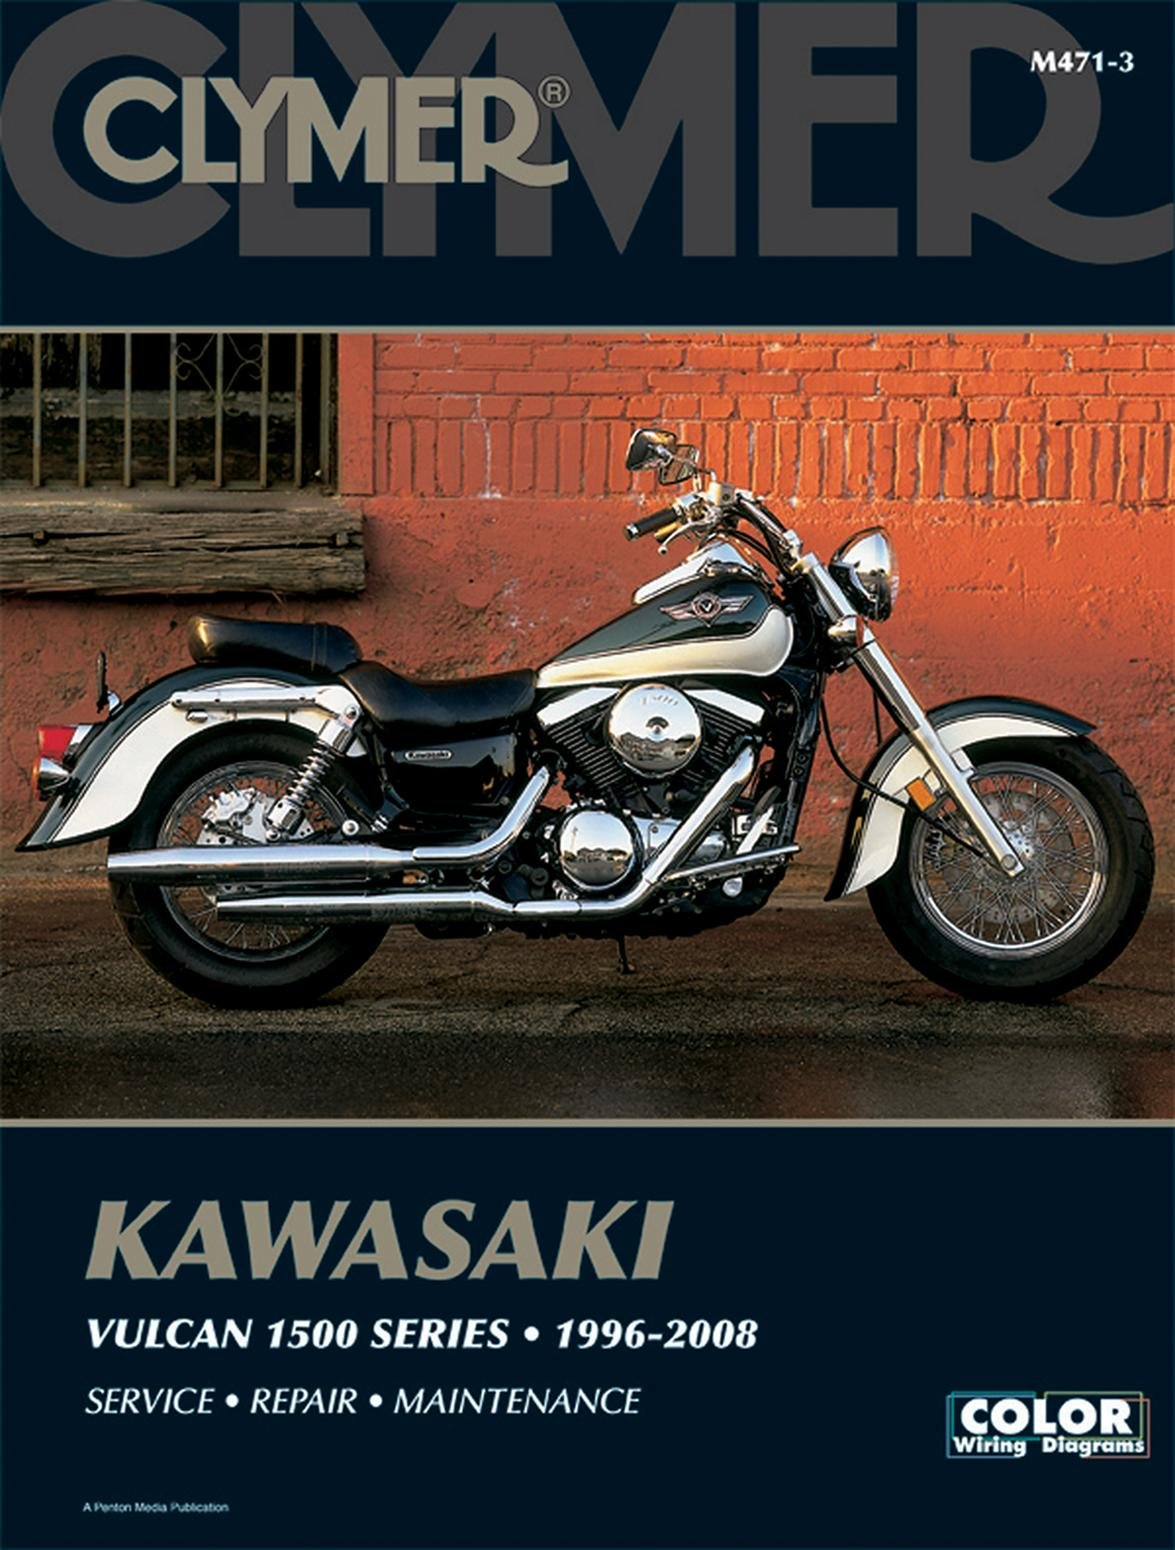 Clymer Repair Manual for Kawasaki VN1500 Vulcan 96-08